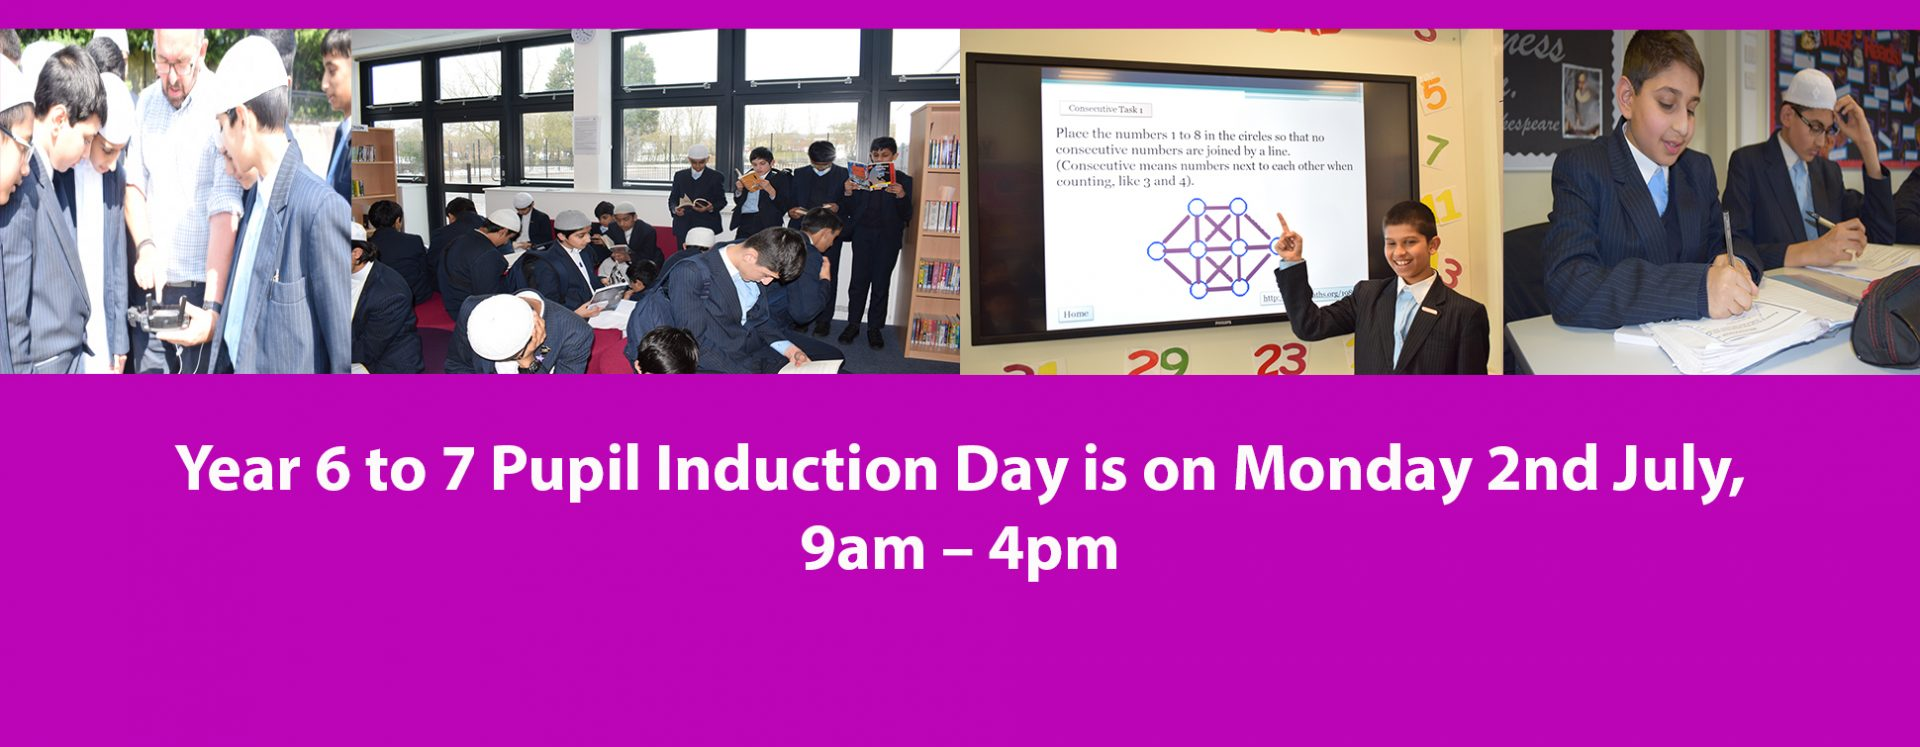 Induction Day